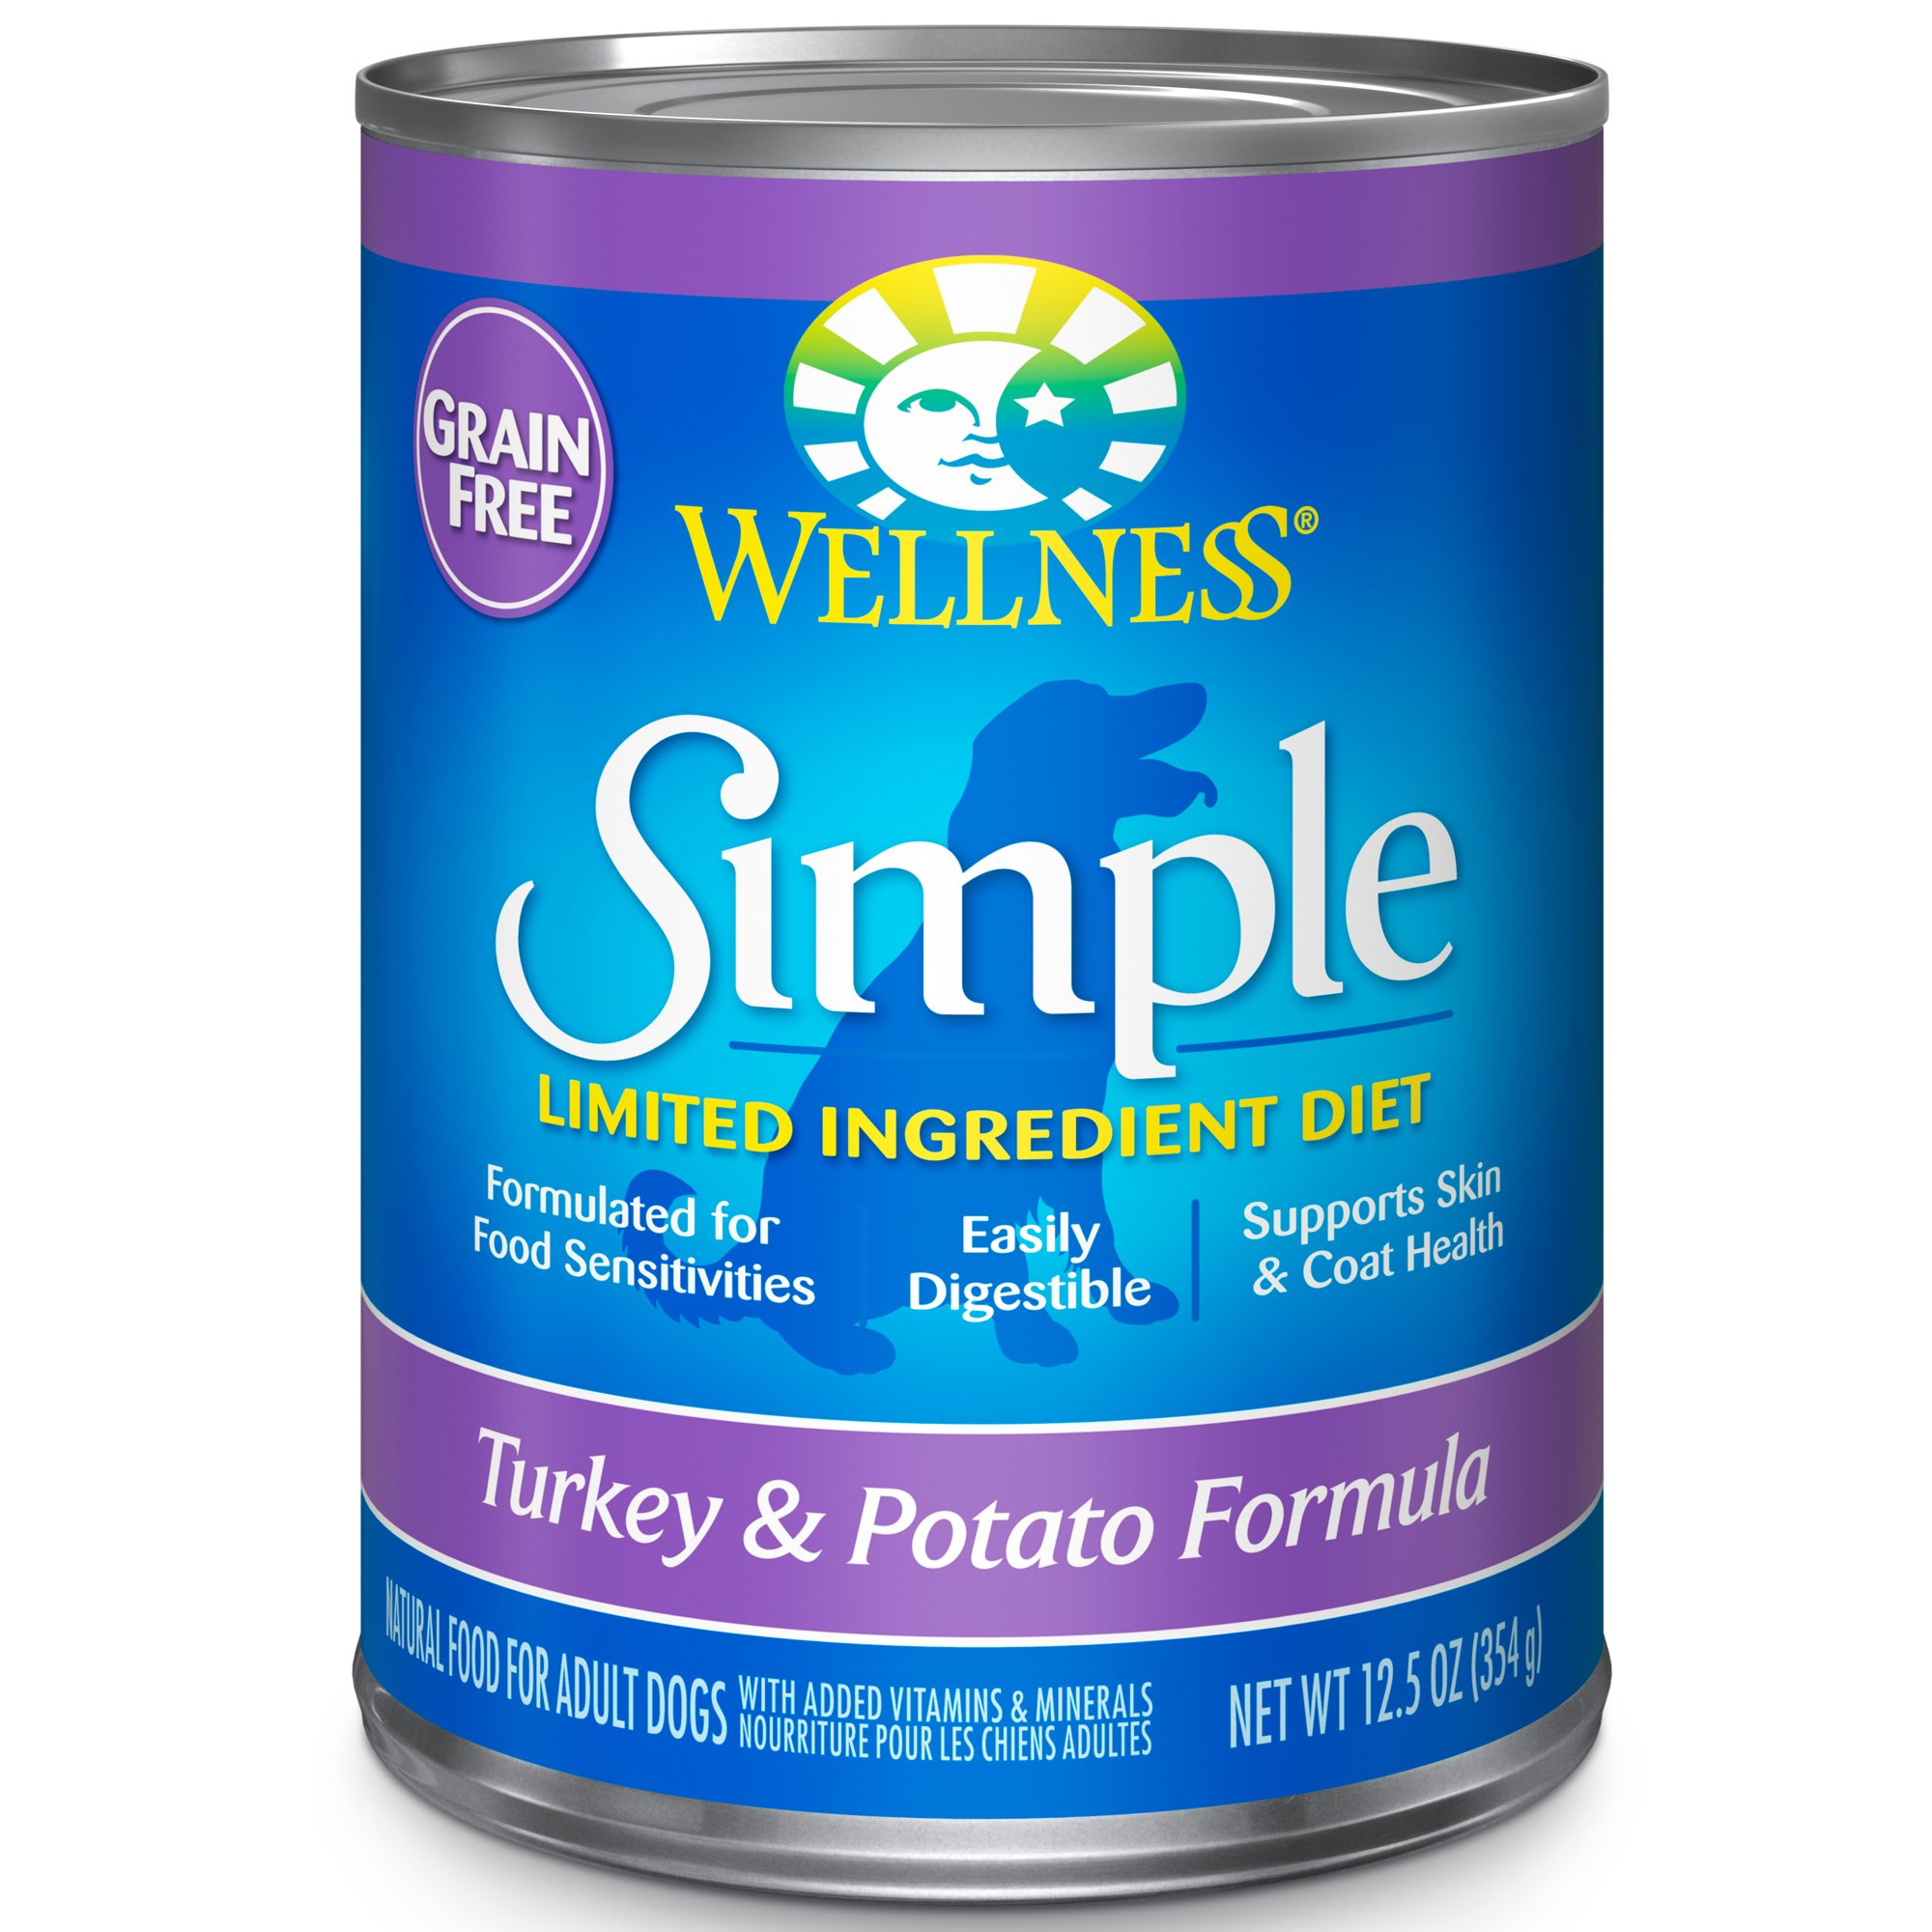 Wellness Simple Natural Grain Free Wet Canned Limited Ingredient Dog Food, Turkey & Potato, 12.5-Ounce Can (Pack of 12) by Wellness Natural Pet Food (Image #1)